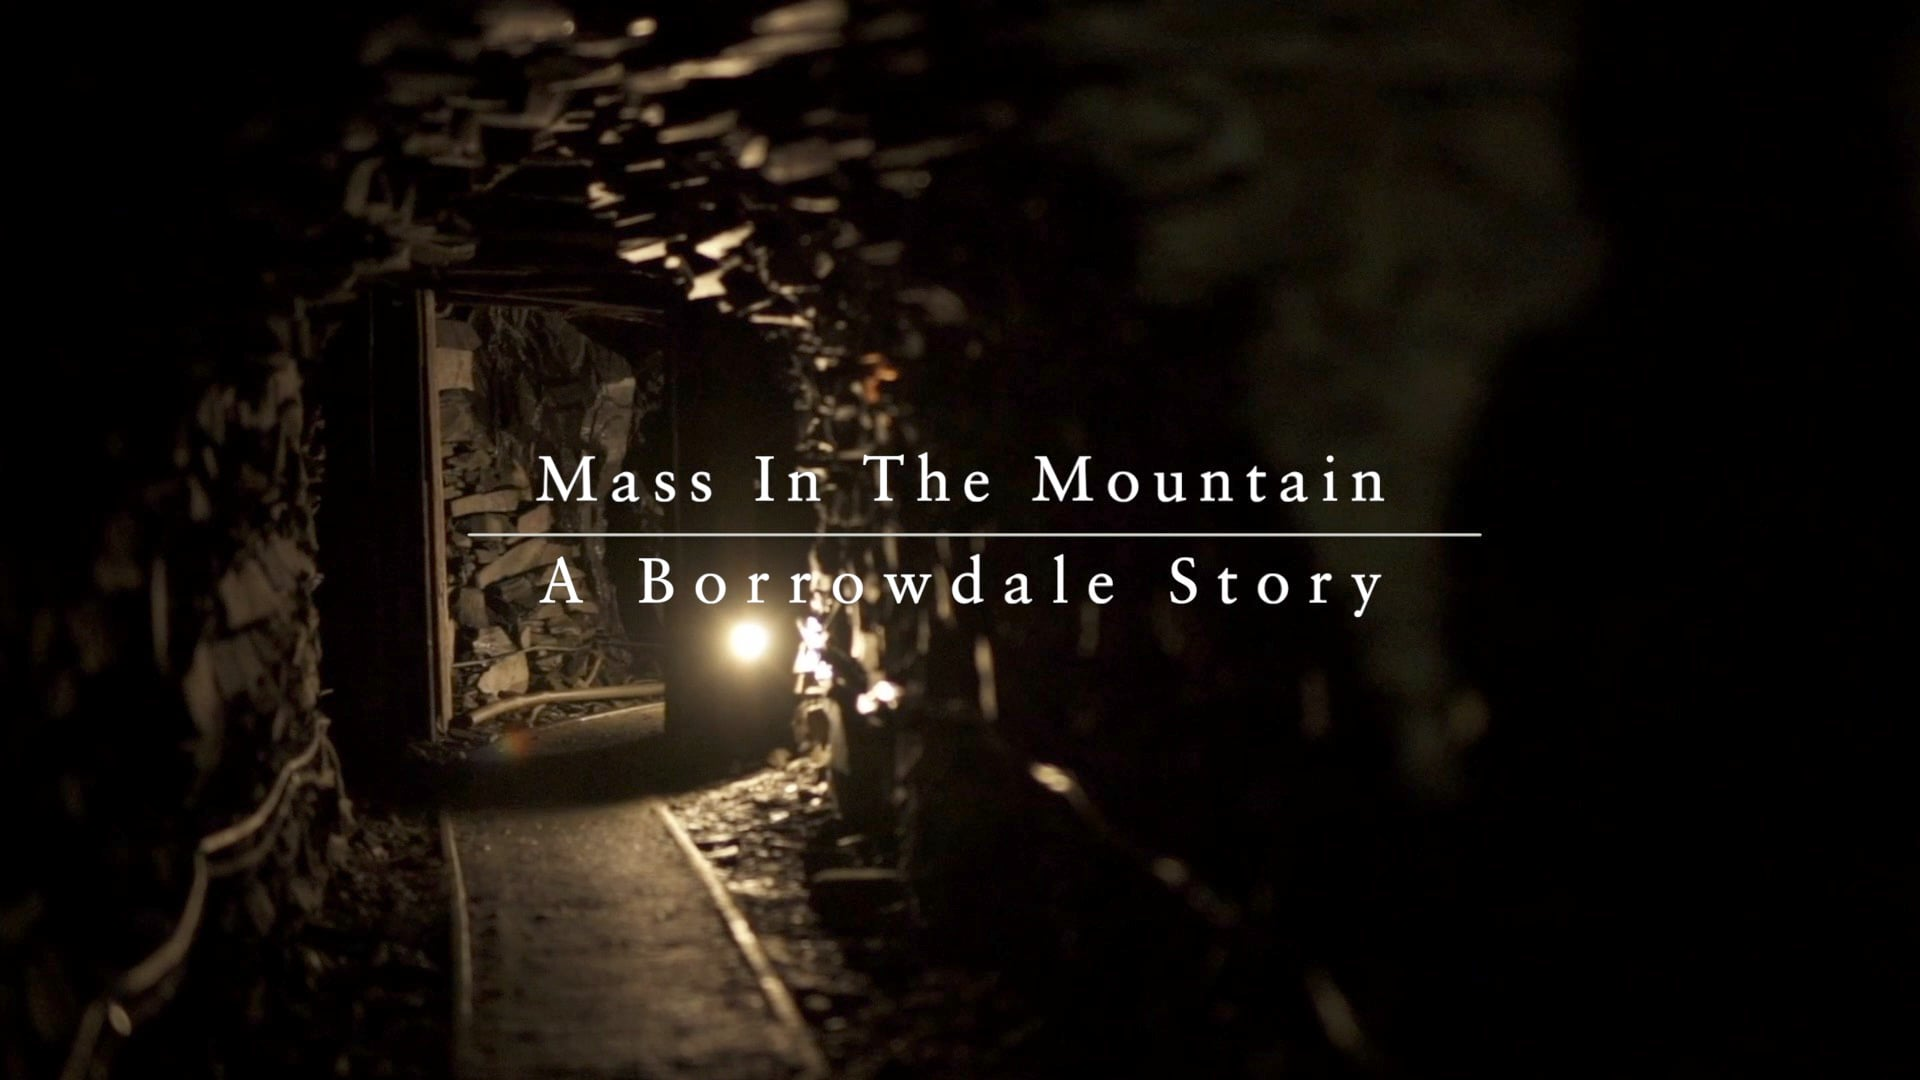 Mass in the Mountain - A Borrowdale Story